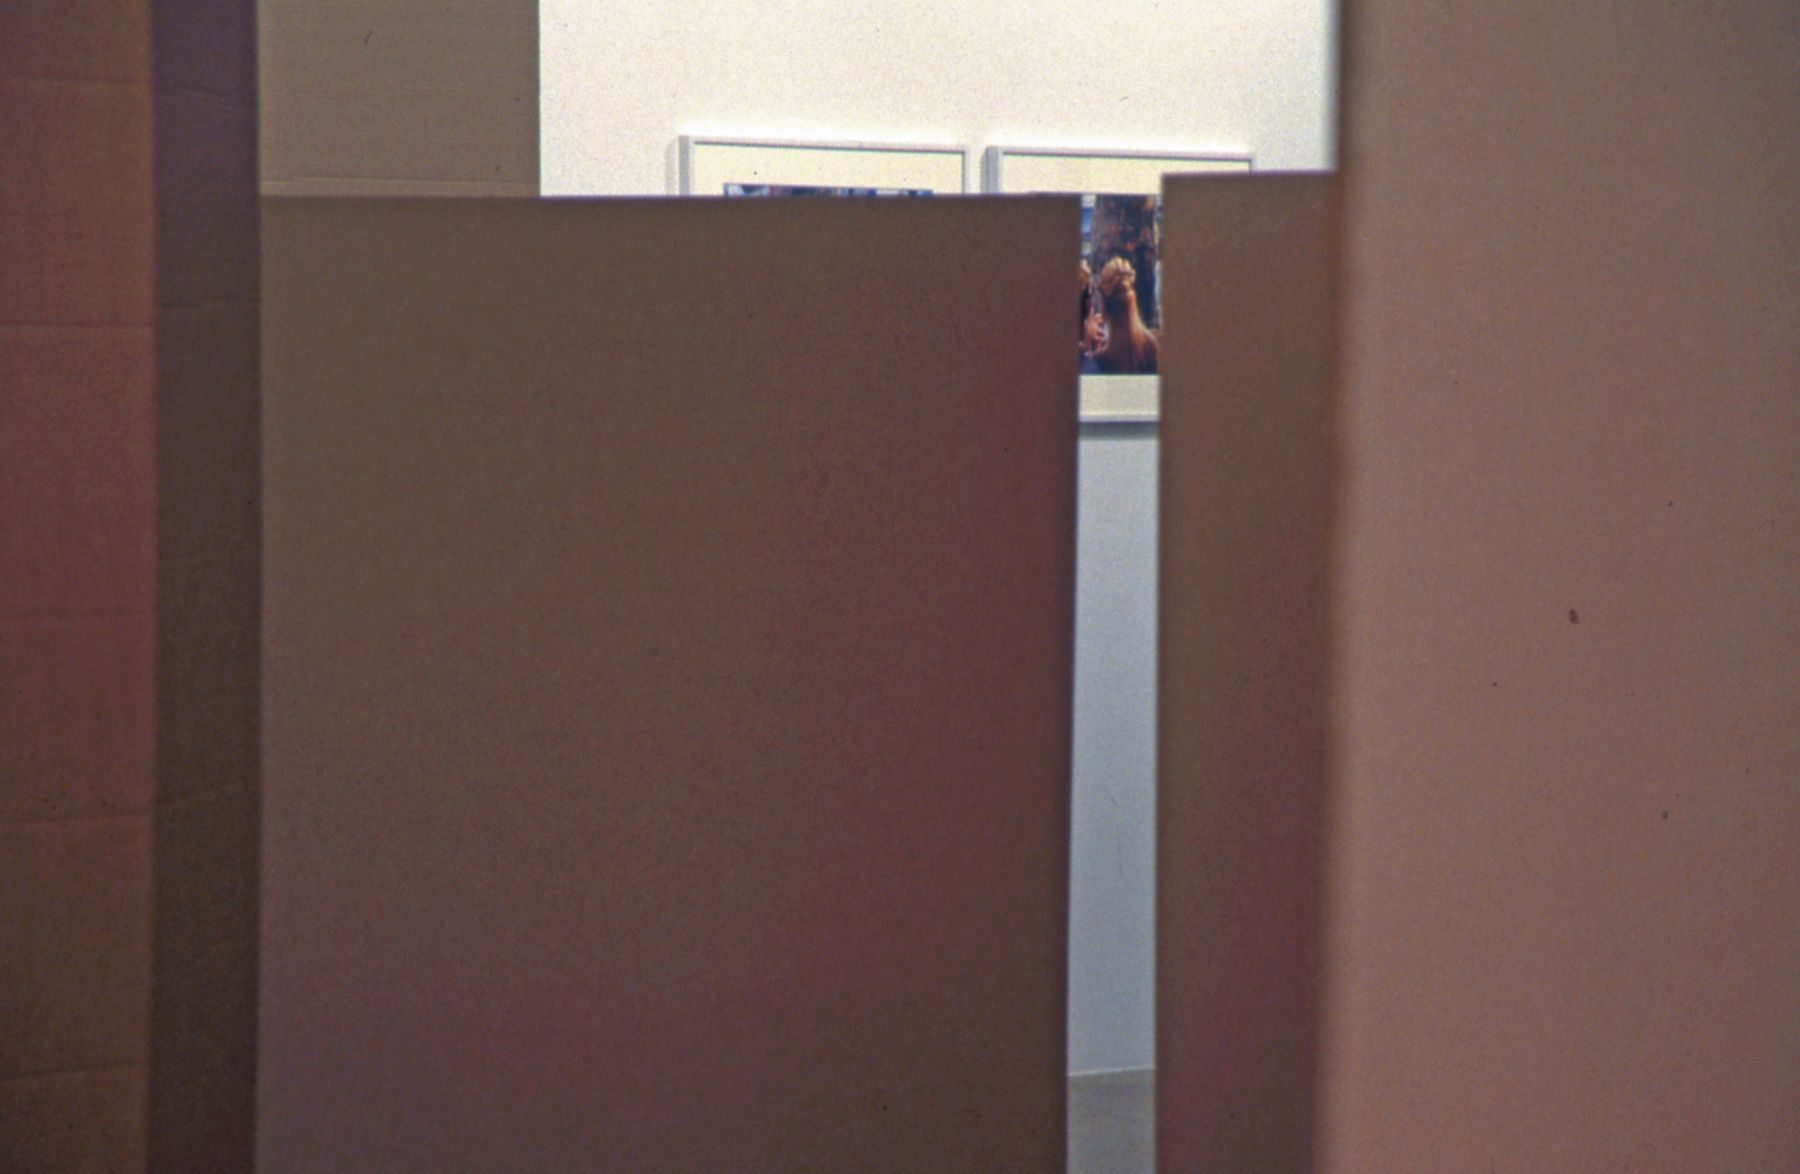 Installation view, Perth Amboy, Greene Naftali, New York, 2001